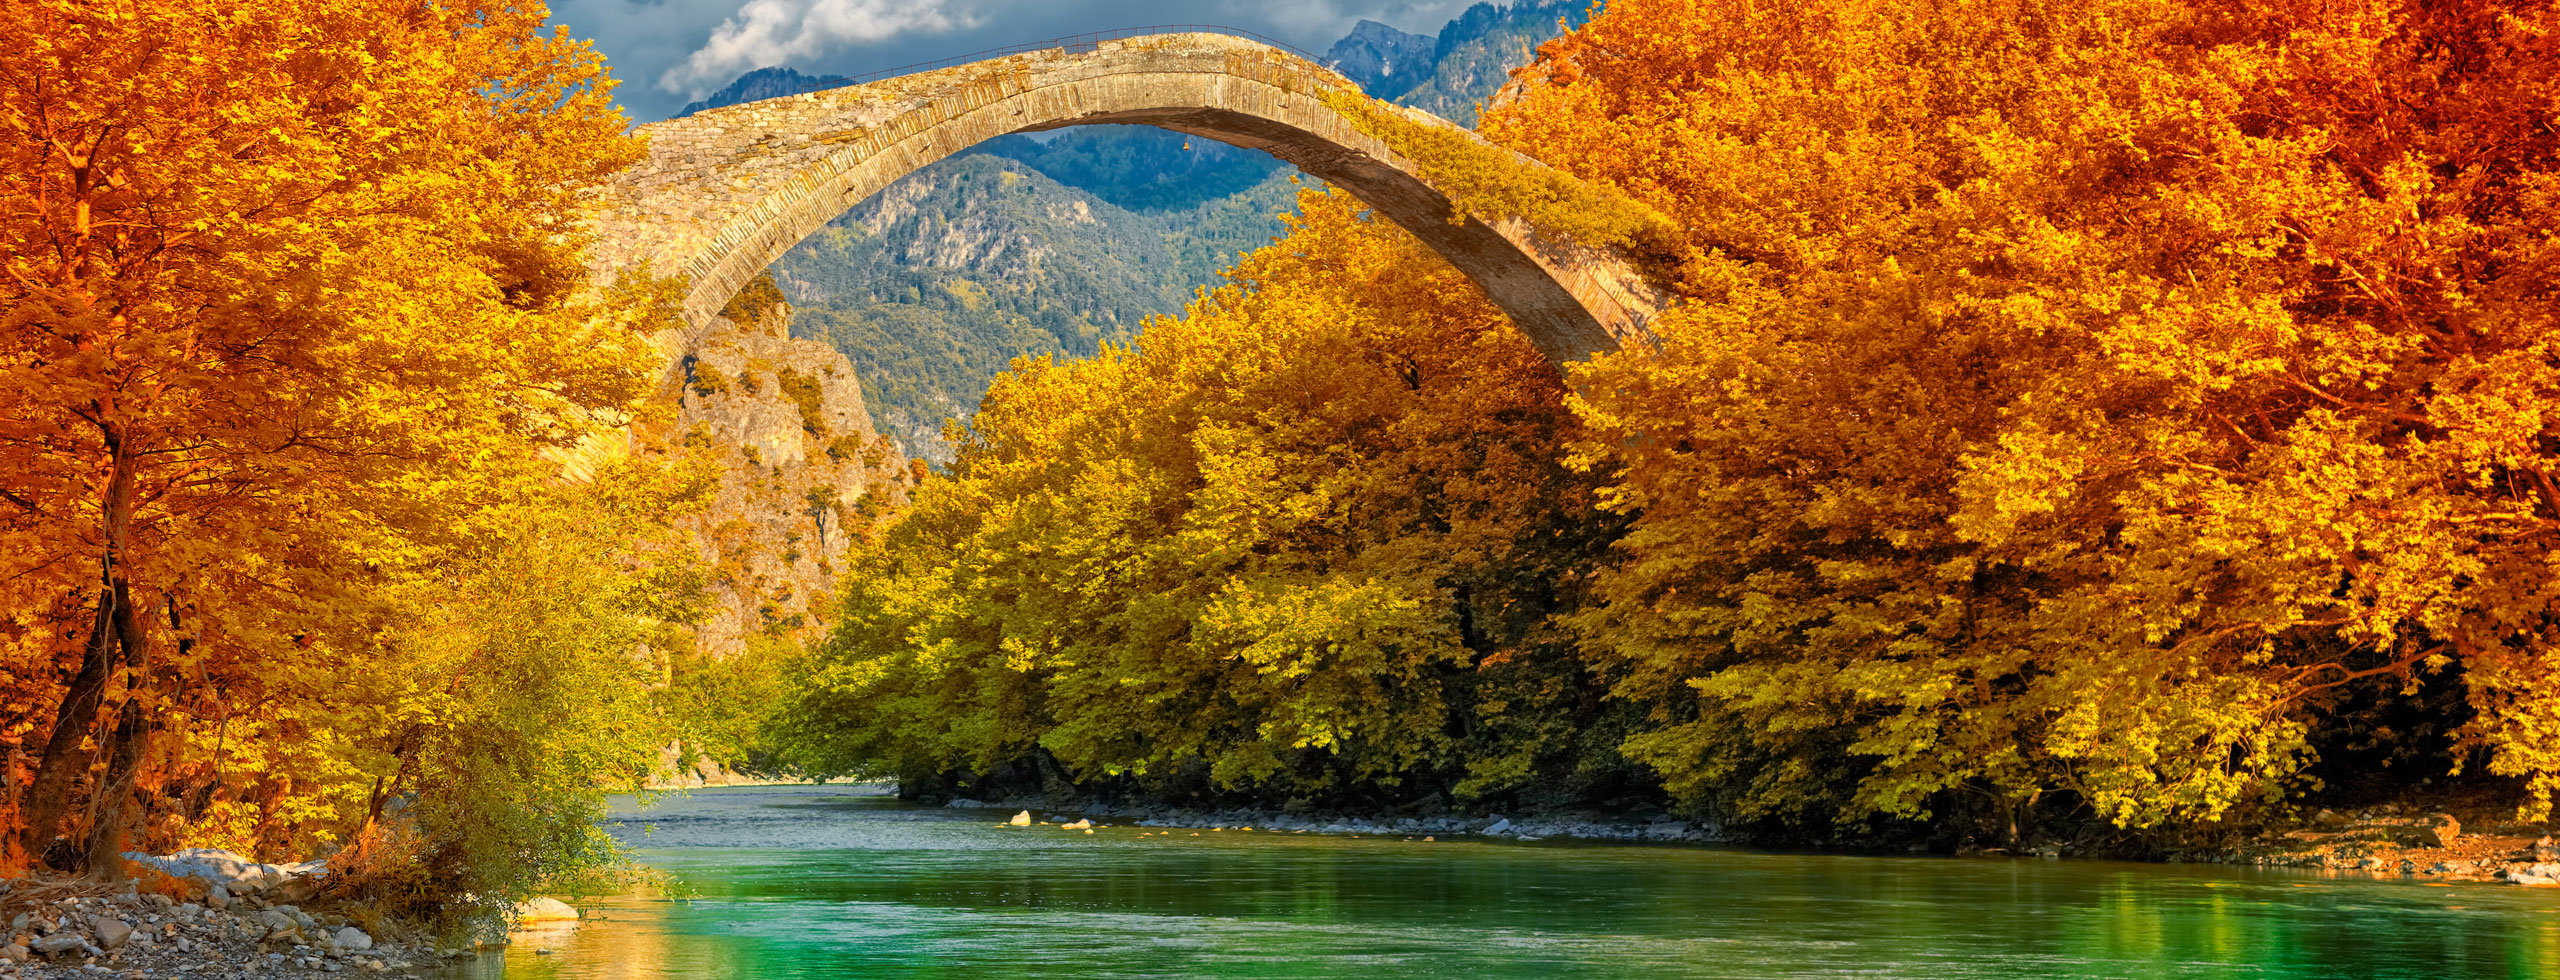 Image result for fall in greece